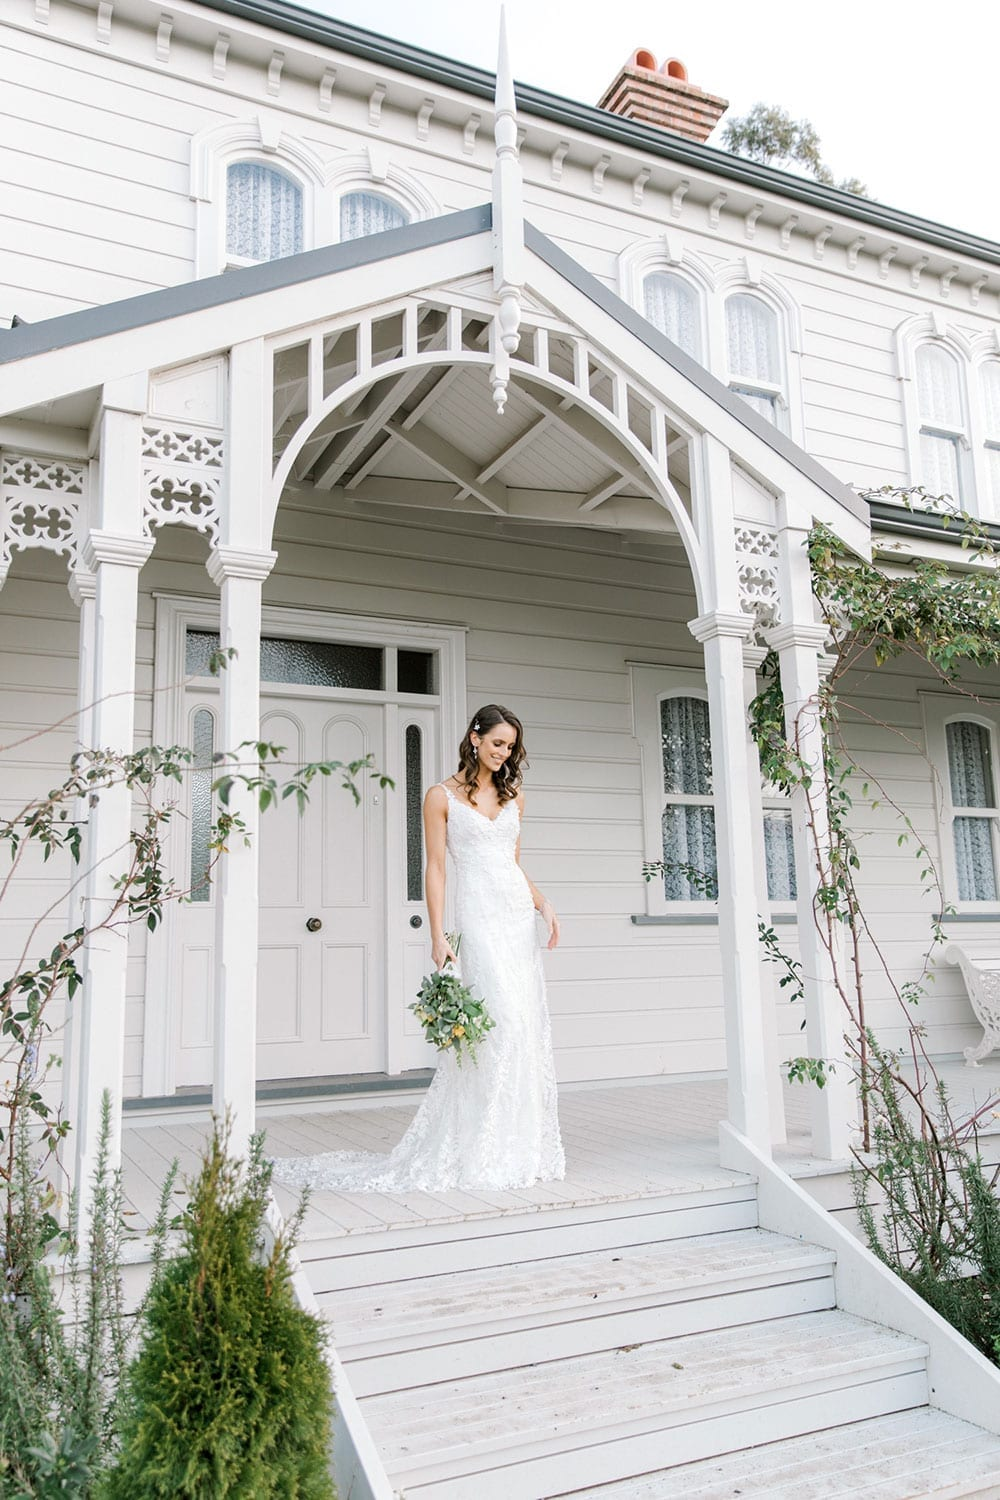 Model wearing Vinka Design Camille Wedding Dress, a Timeless Fitted Wedding Gown on the veranda of a wooden building with an arch